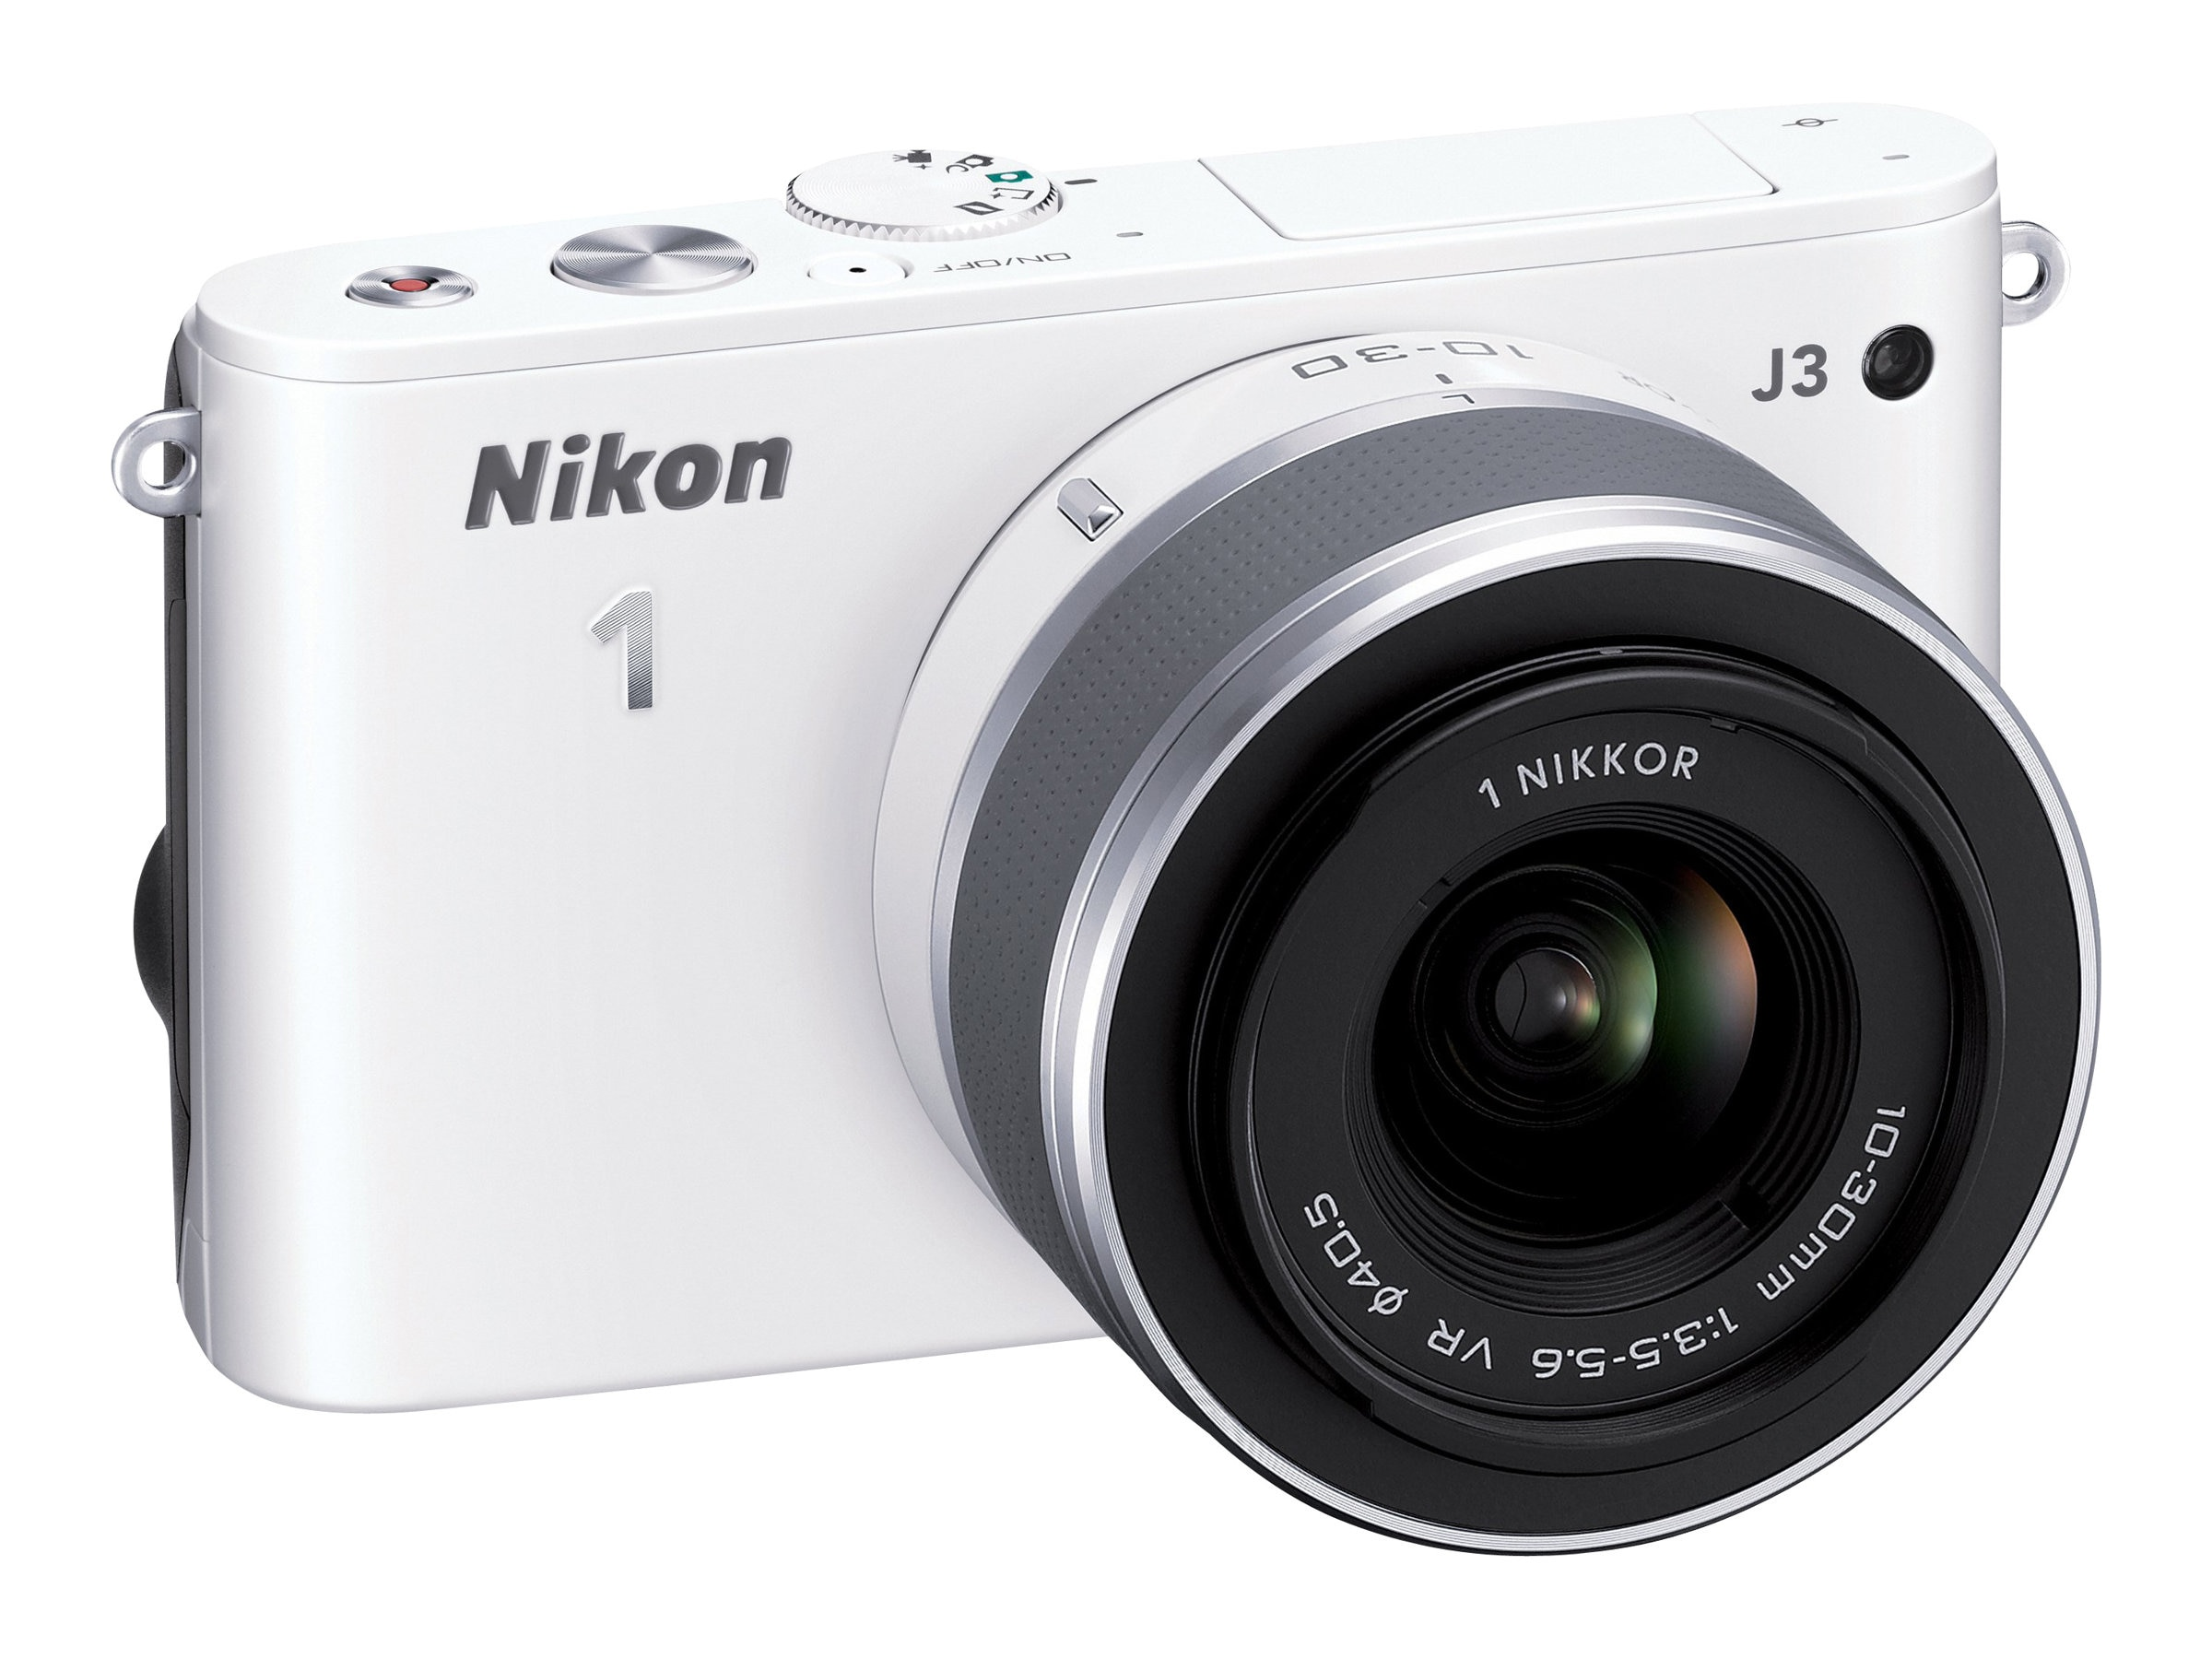 Nikon J3 Interchangable Lens Digital Camera, 14.2MP, White with 10-100mm Lens, 27658, 15256501, Cameras - Digital - SLR